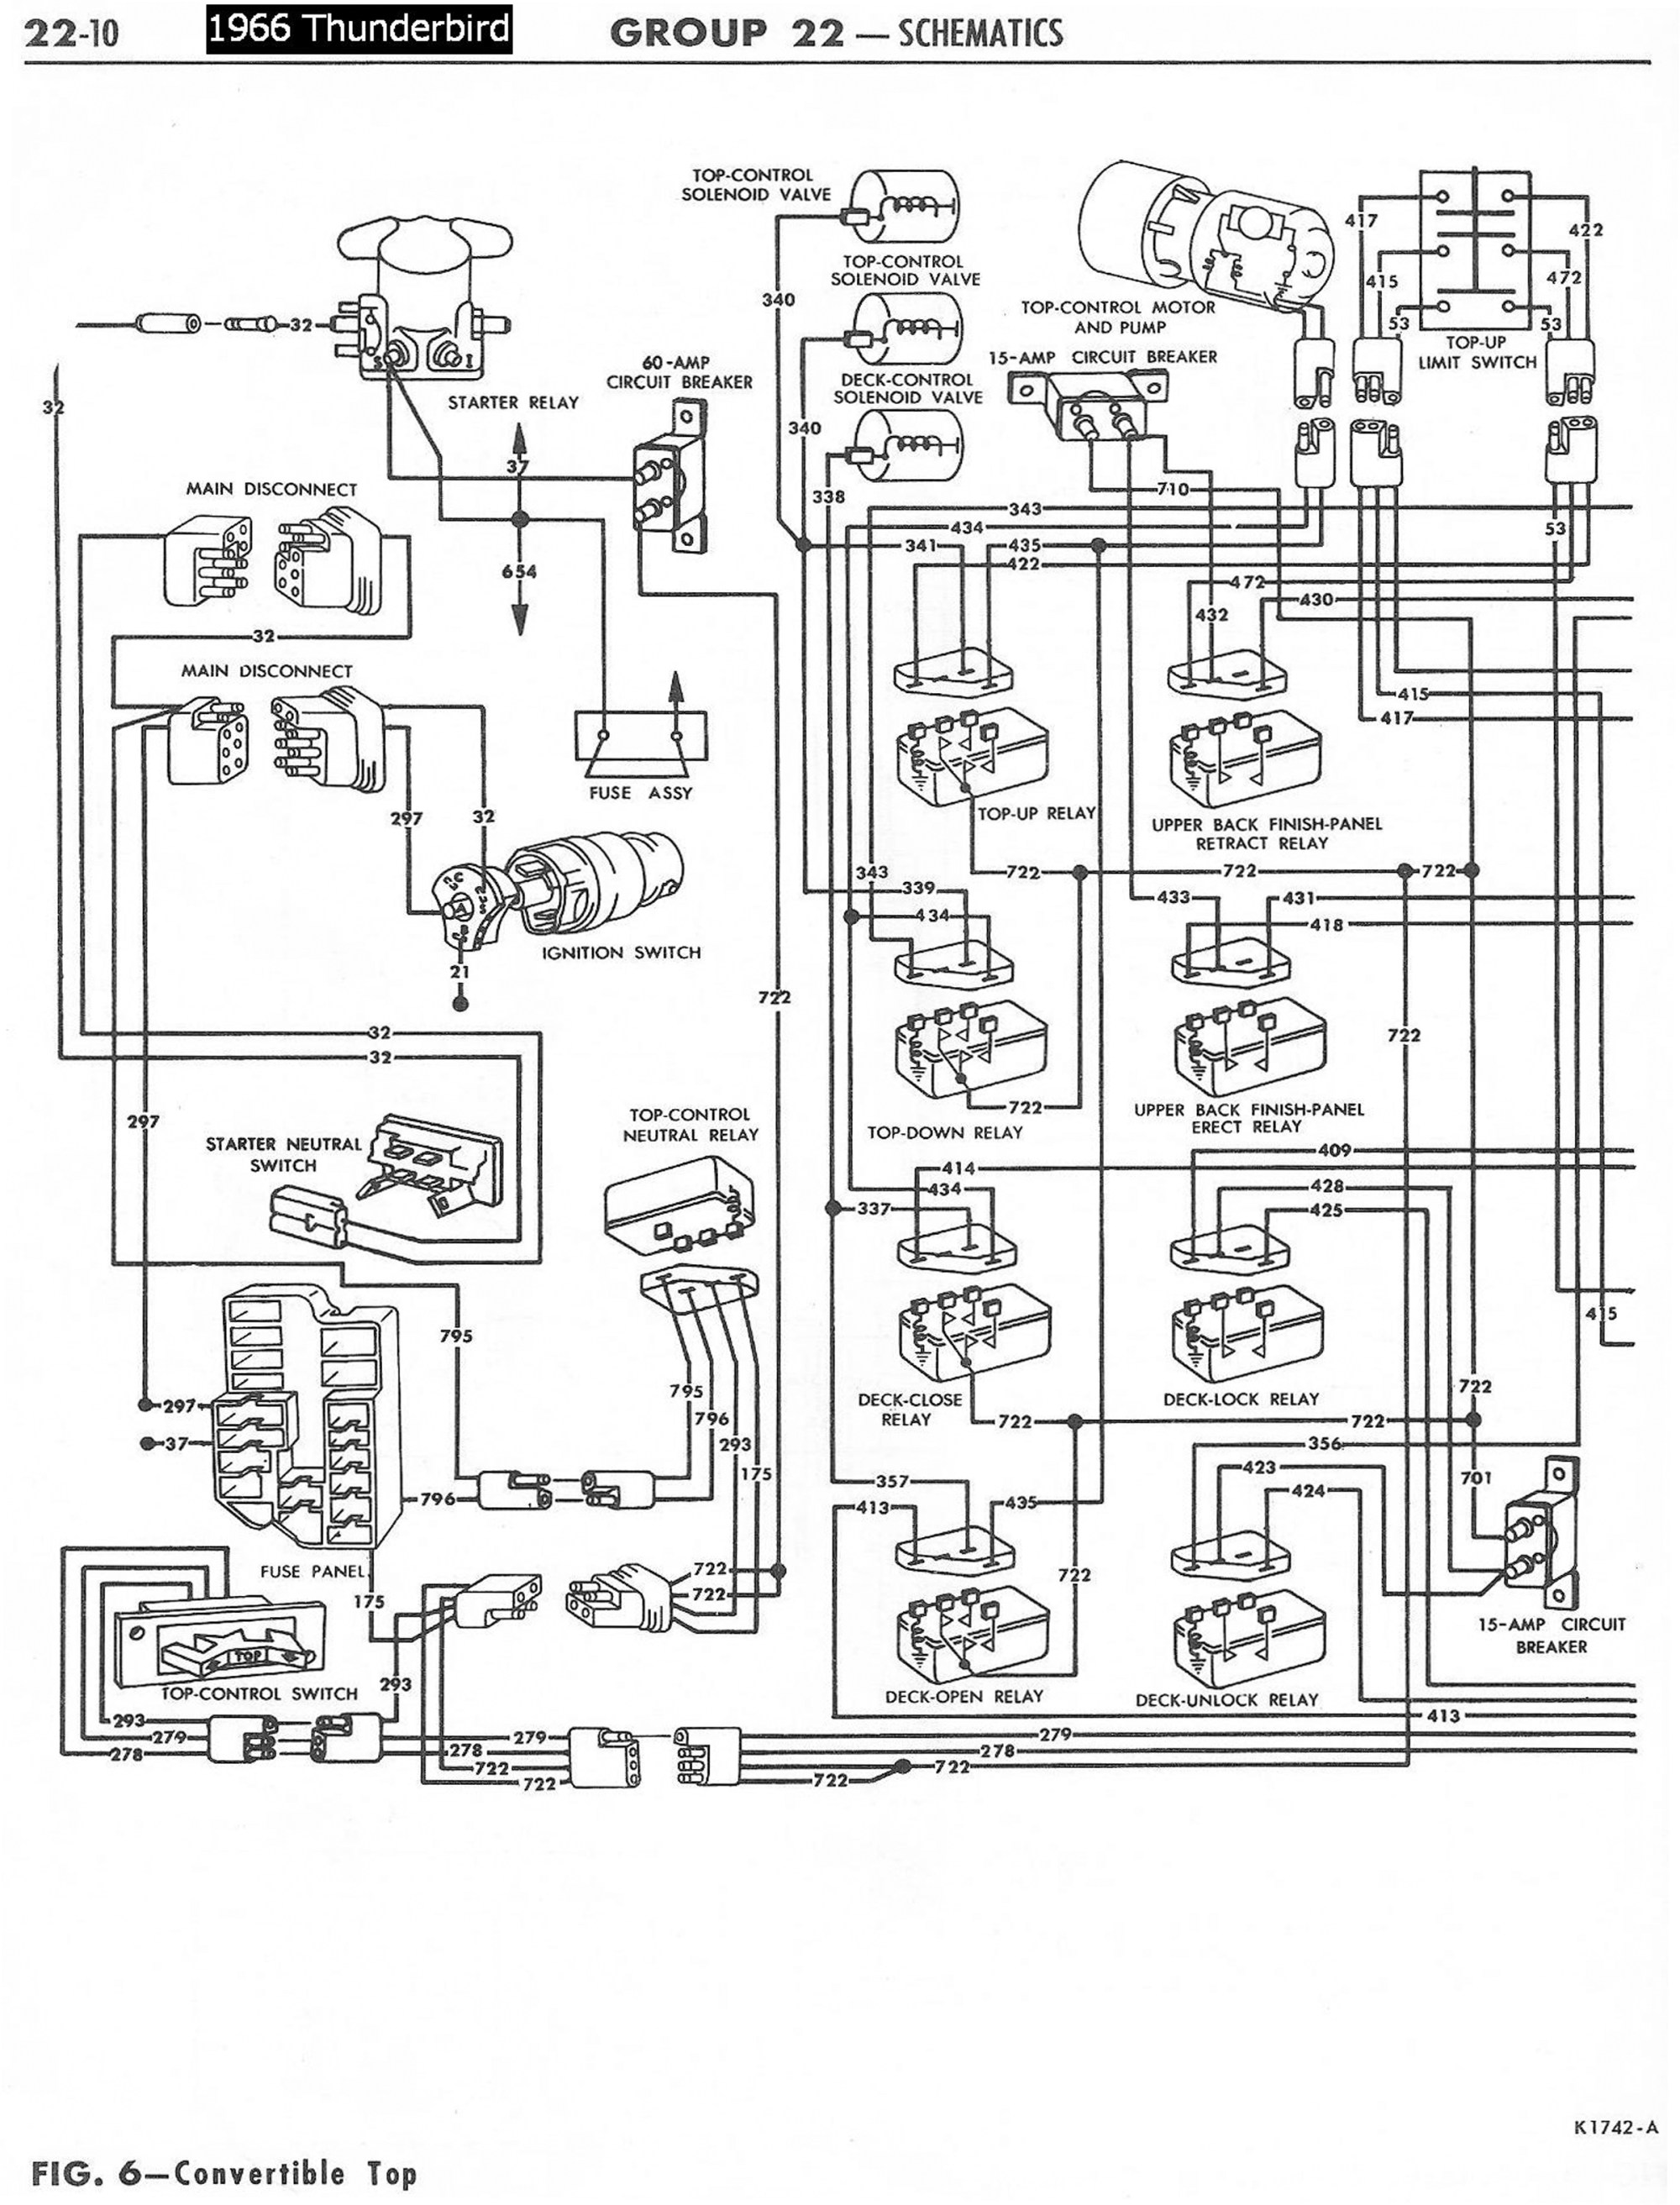 hight resolution of 1958 68 ford electrical schematics rh squarebirds org 73 thunderbird 69 thunderbird